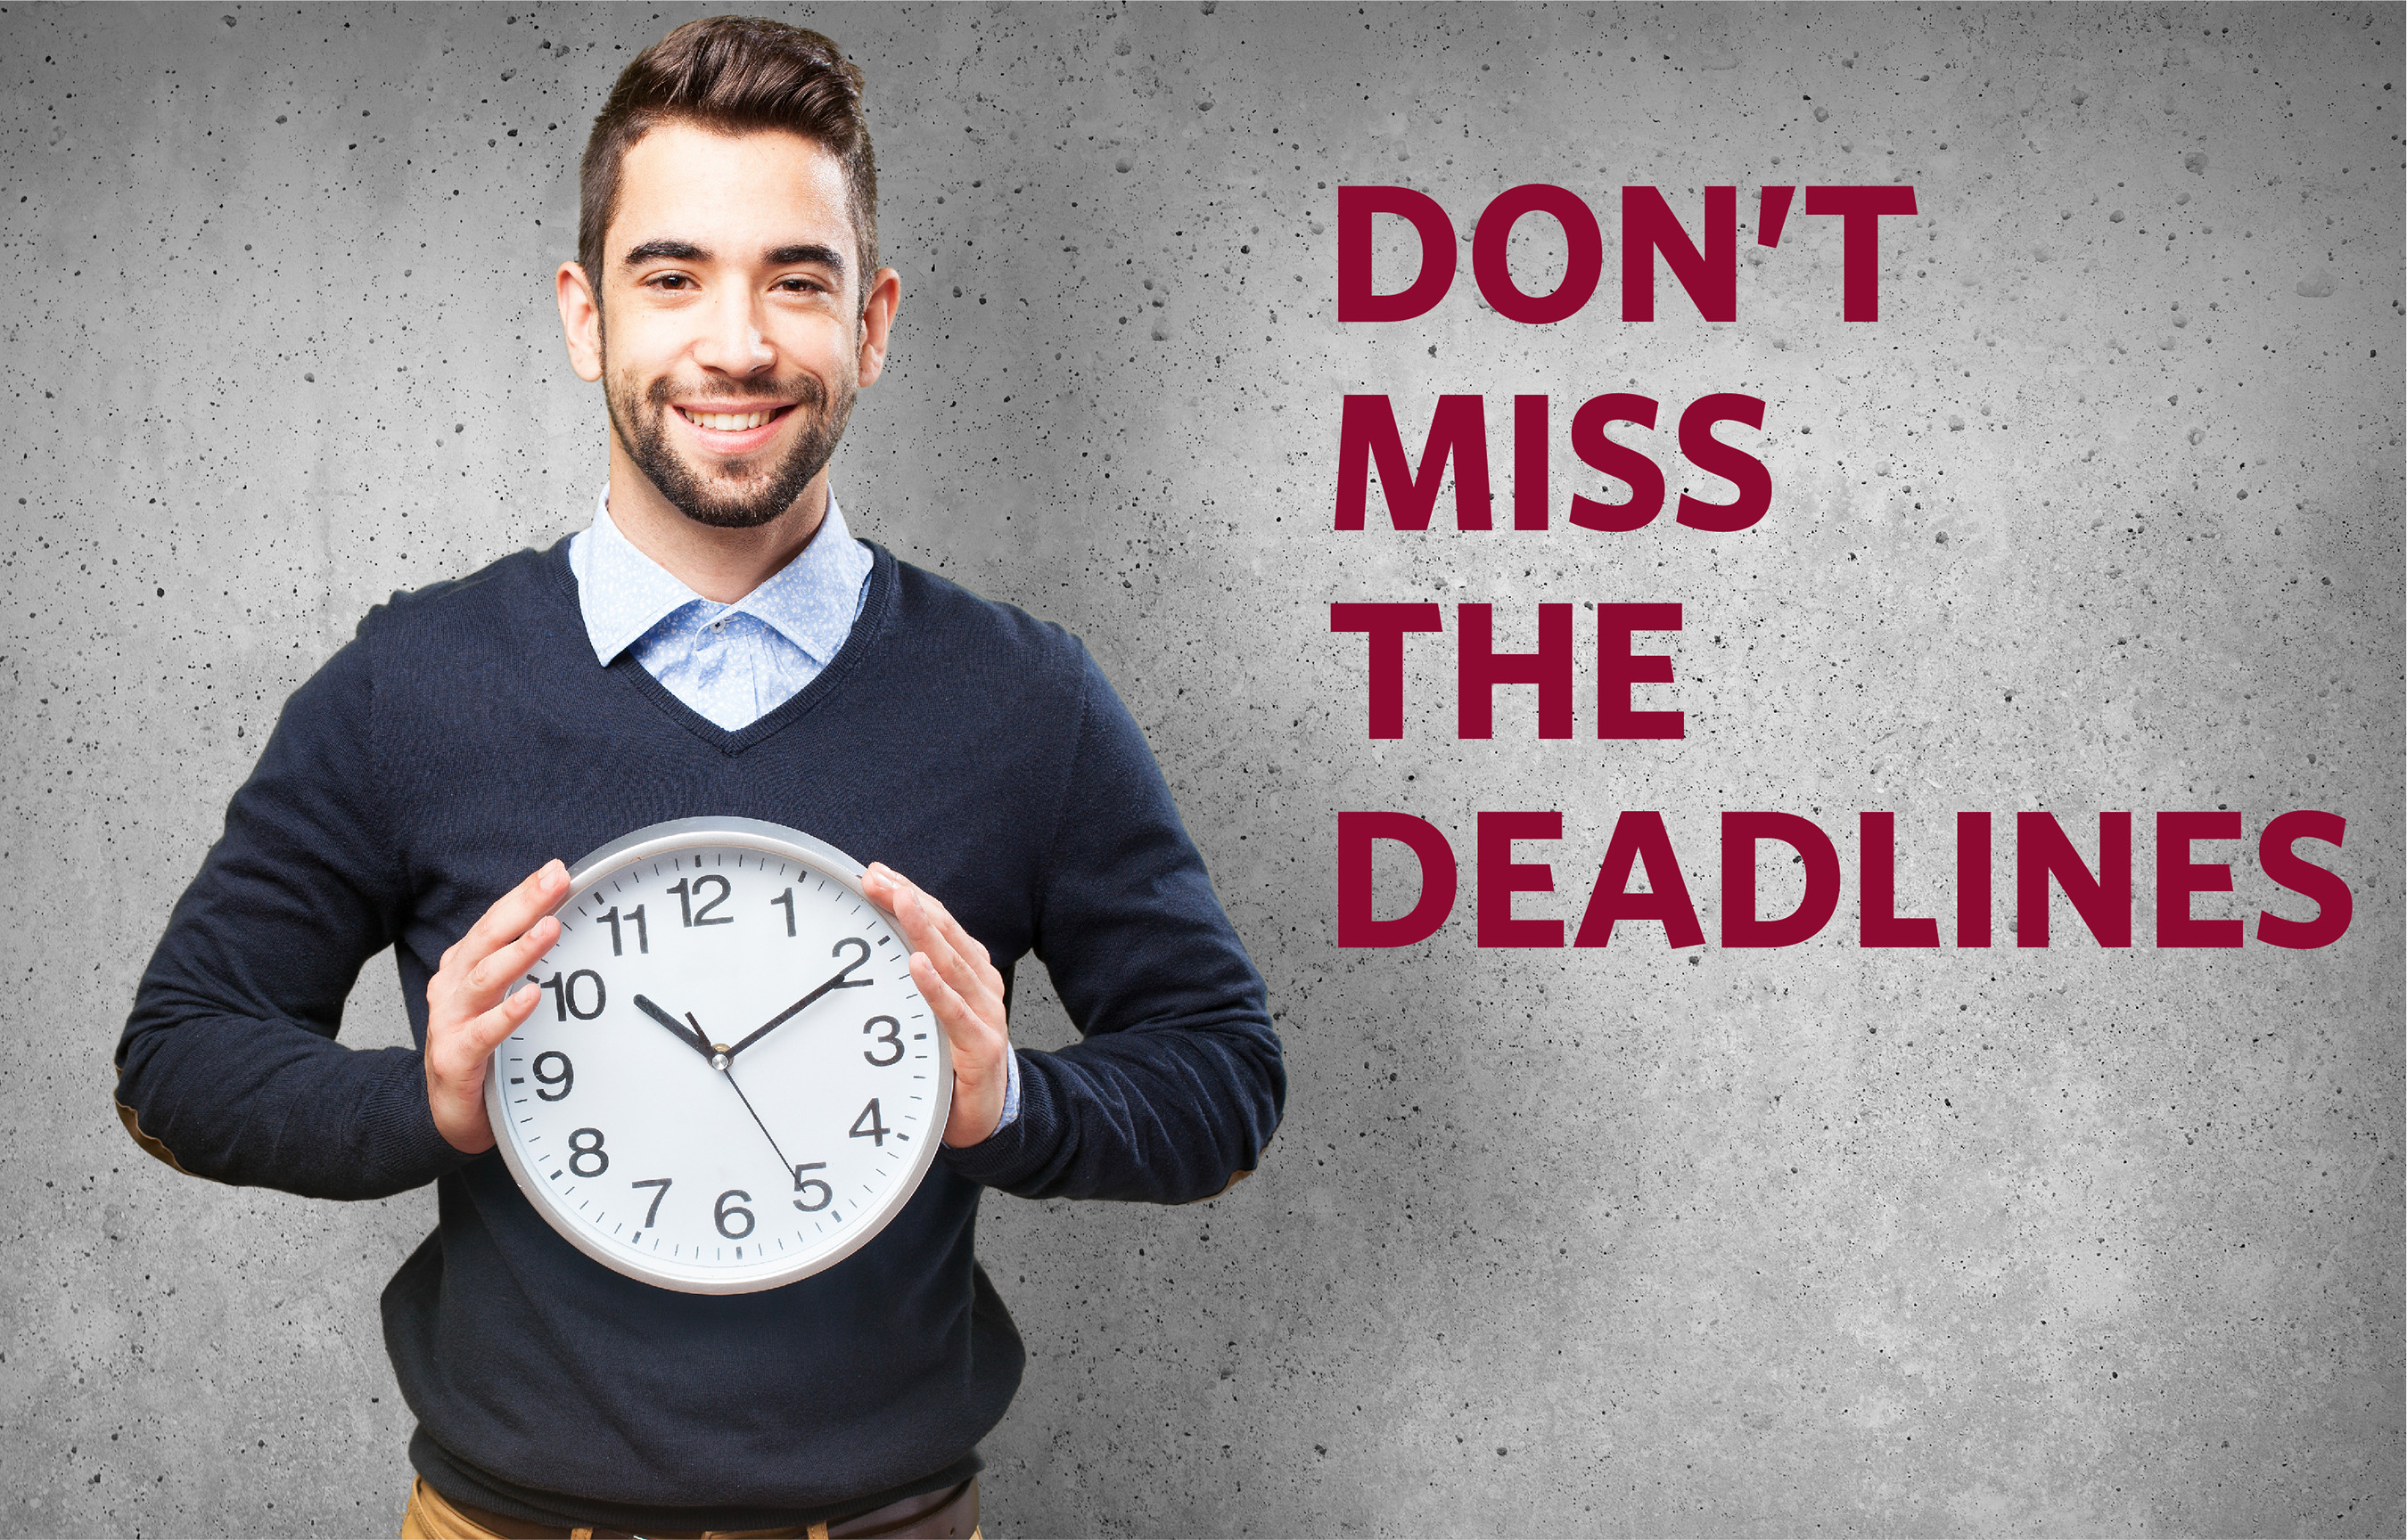 Businesses have a lot of deadlines to keep track of each year, Greatland Corporation has tools available 24/7 to help filers avoid mistakes like missing a deadline.